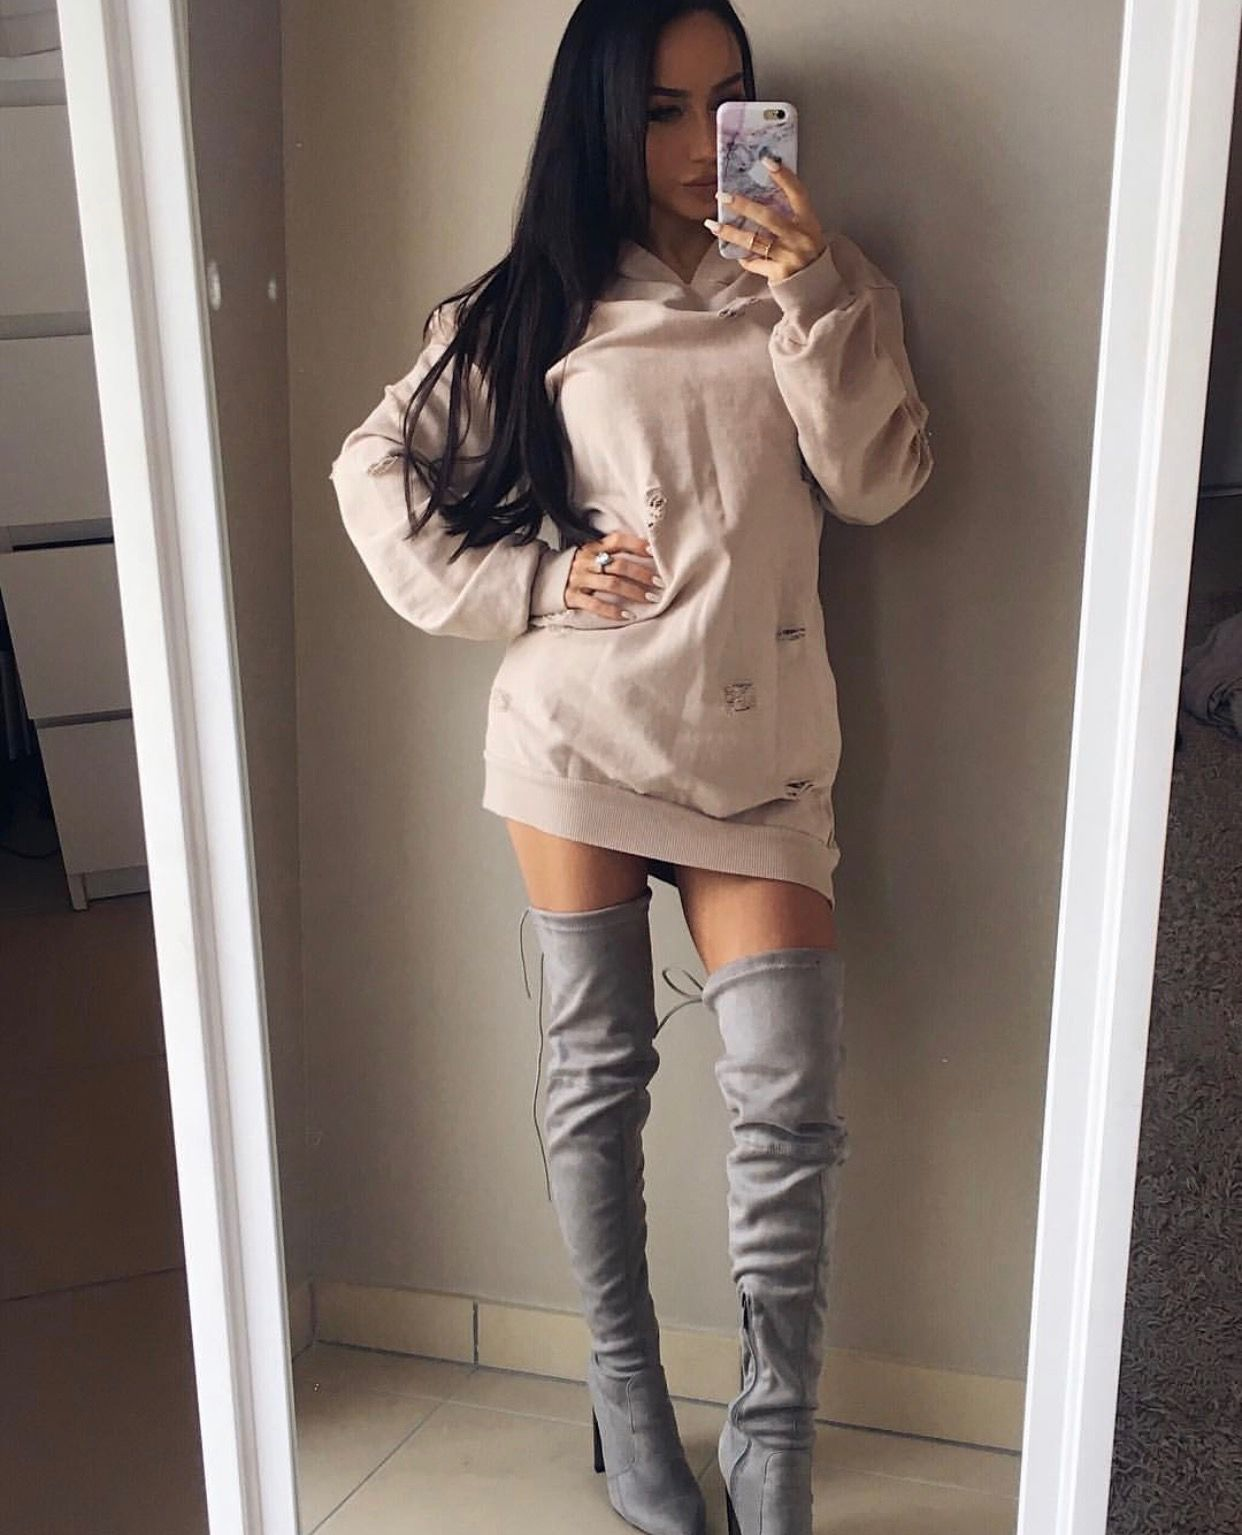 4164887fd965 Coco Lili. Gray thigh high boots. Hoodie dress. Nude colored sweater dress.  Long brunette hair.